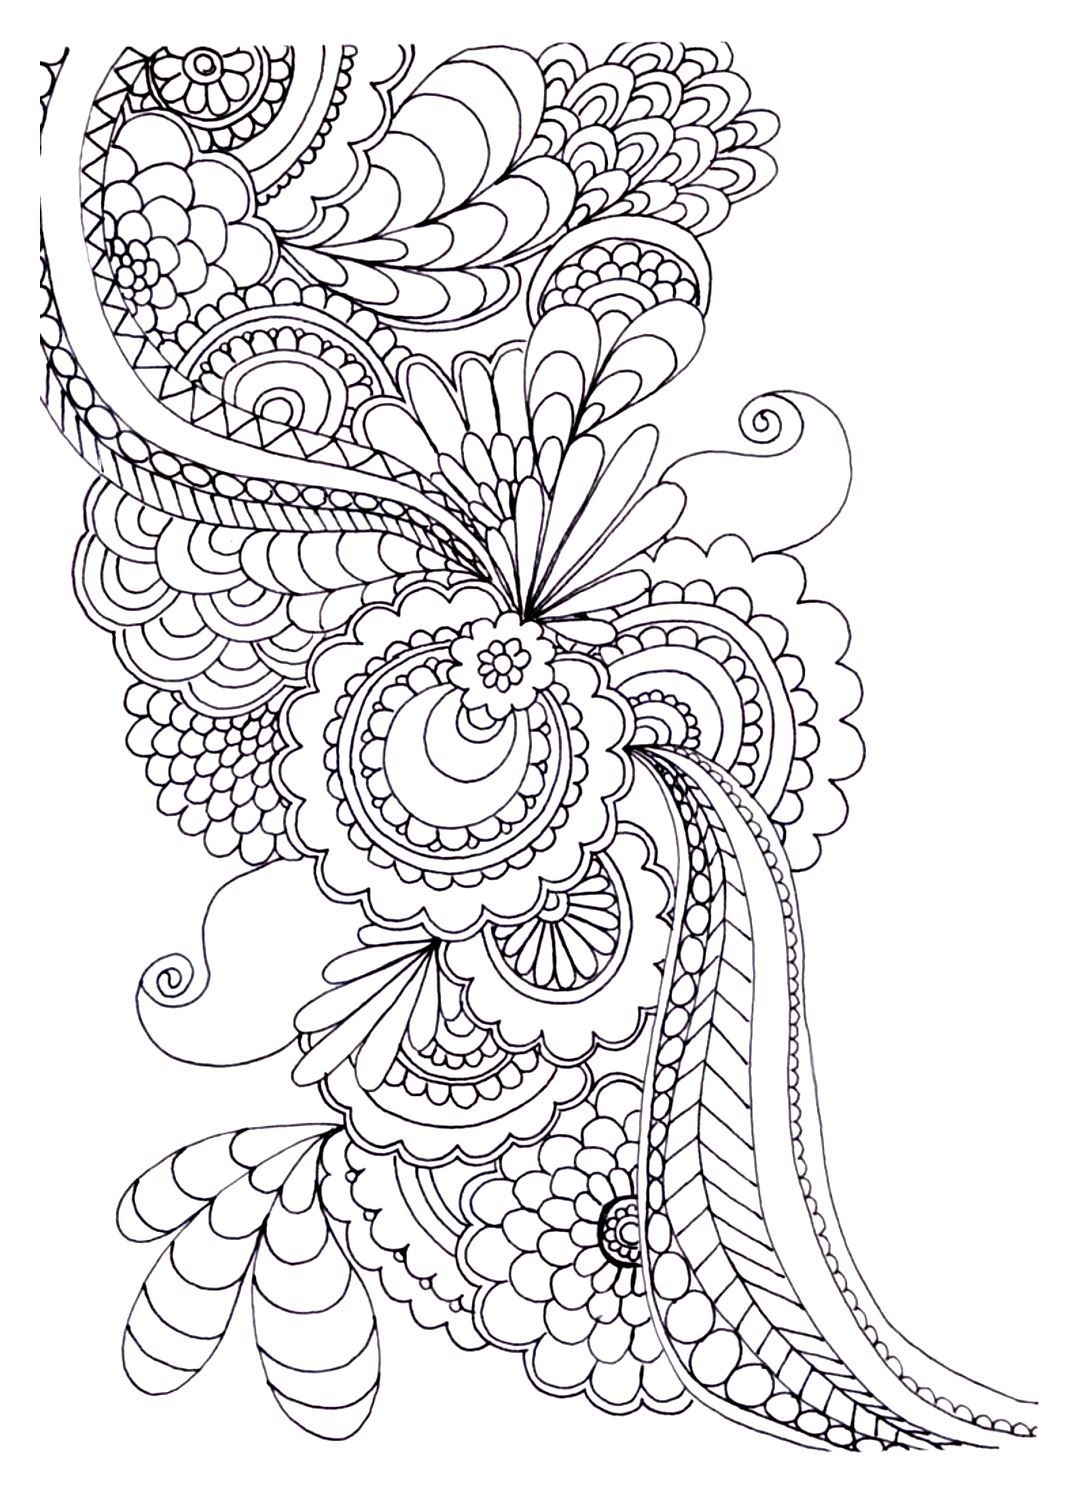 To print this free coloring page «coloring-adult-zen-anti